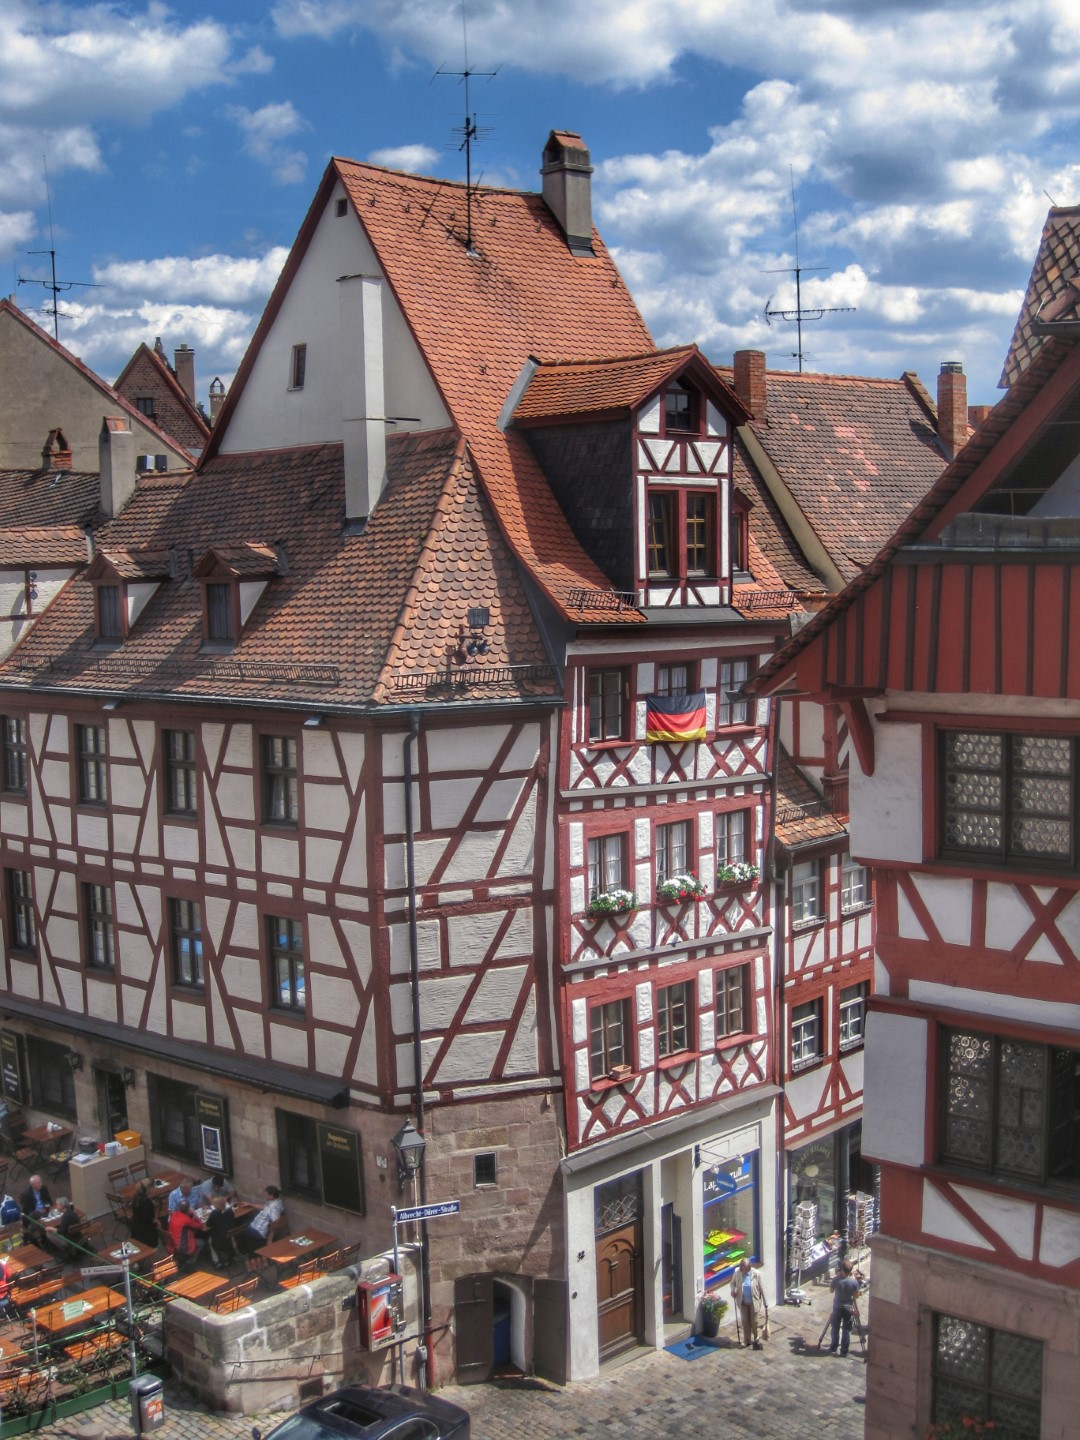 Picturesque towns in Germany